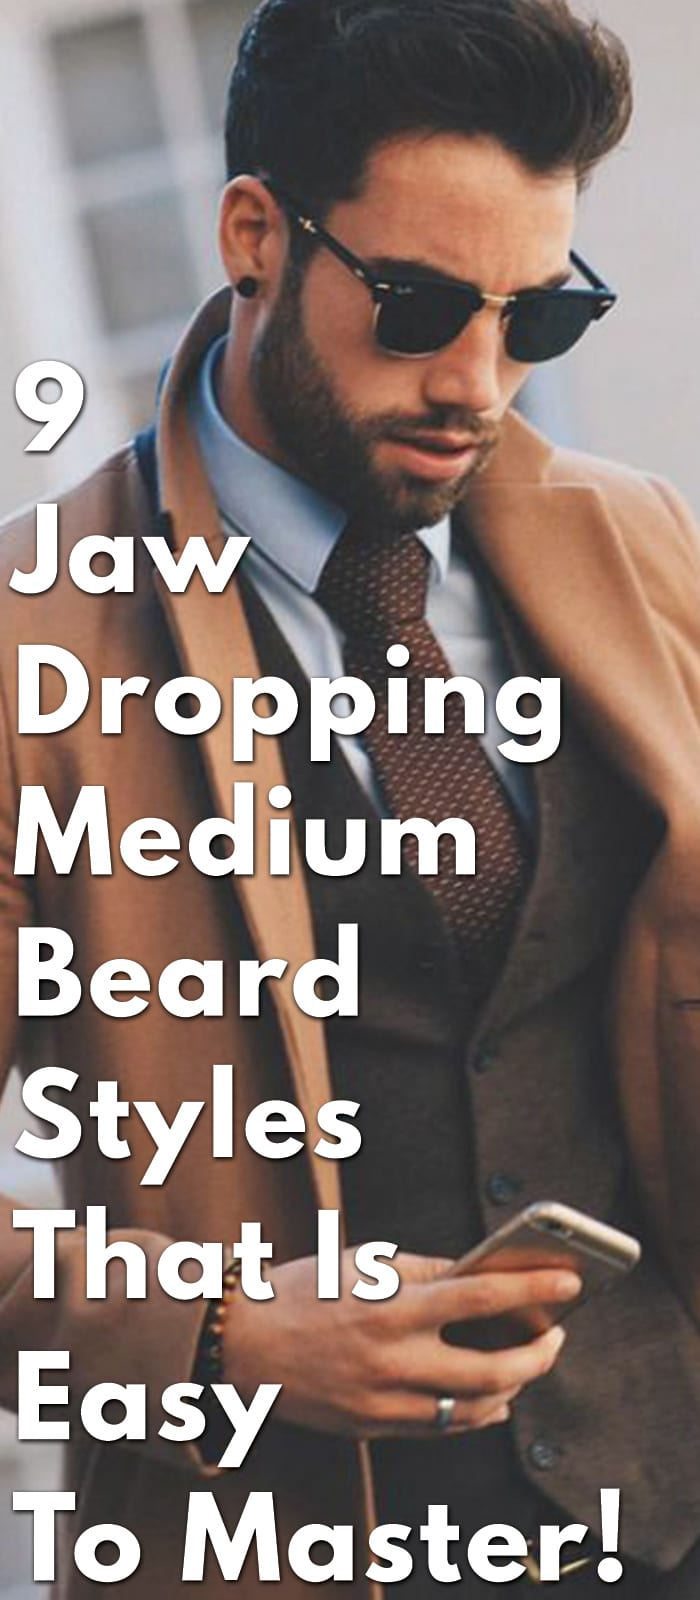 9-Jaw-Dropping-Medium-Beard-Styles-That-Is-Easy-To-Master!